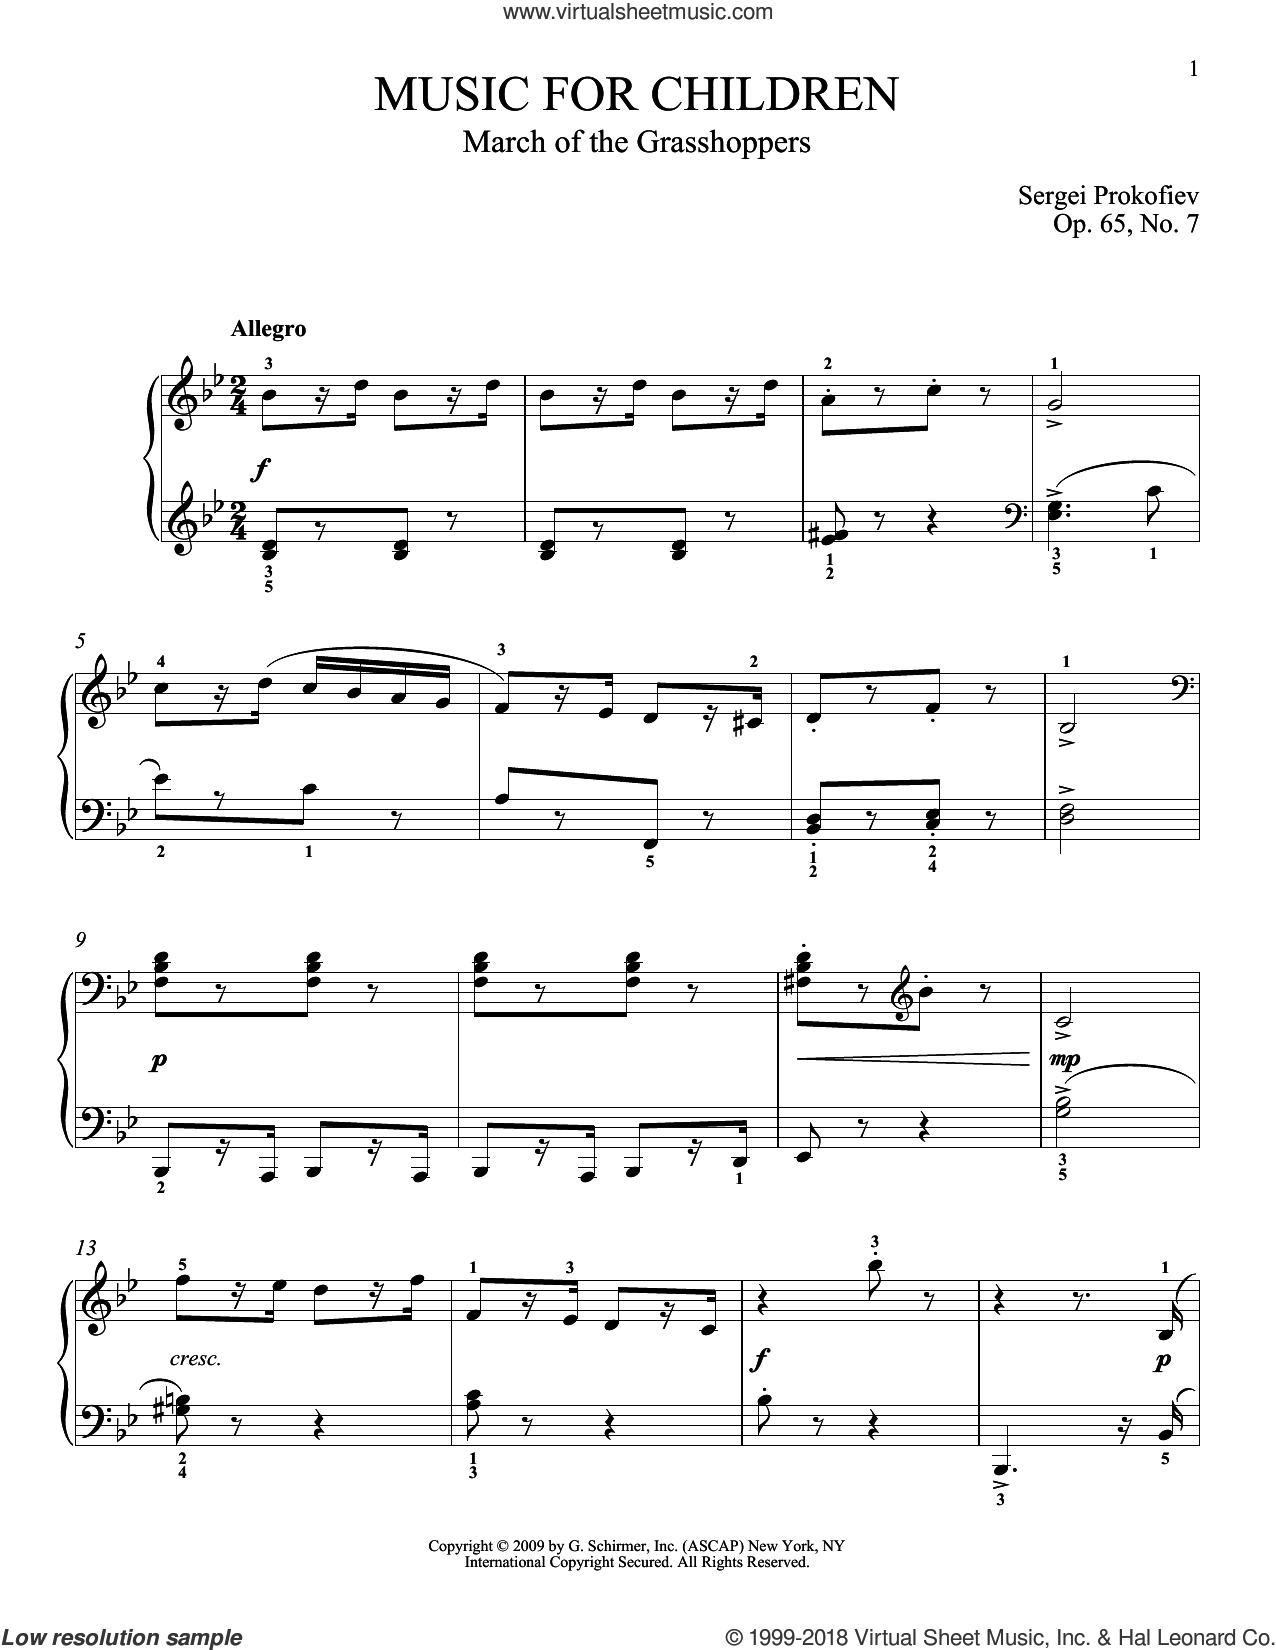 March Of The Grasshoppers sheet music for piano solo by Sergei Prokofiev